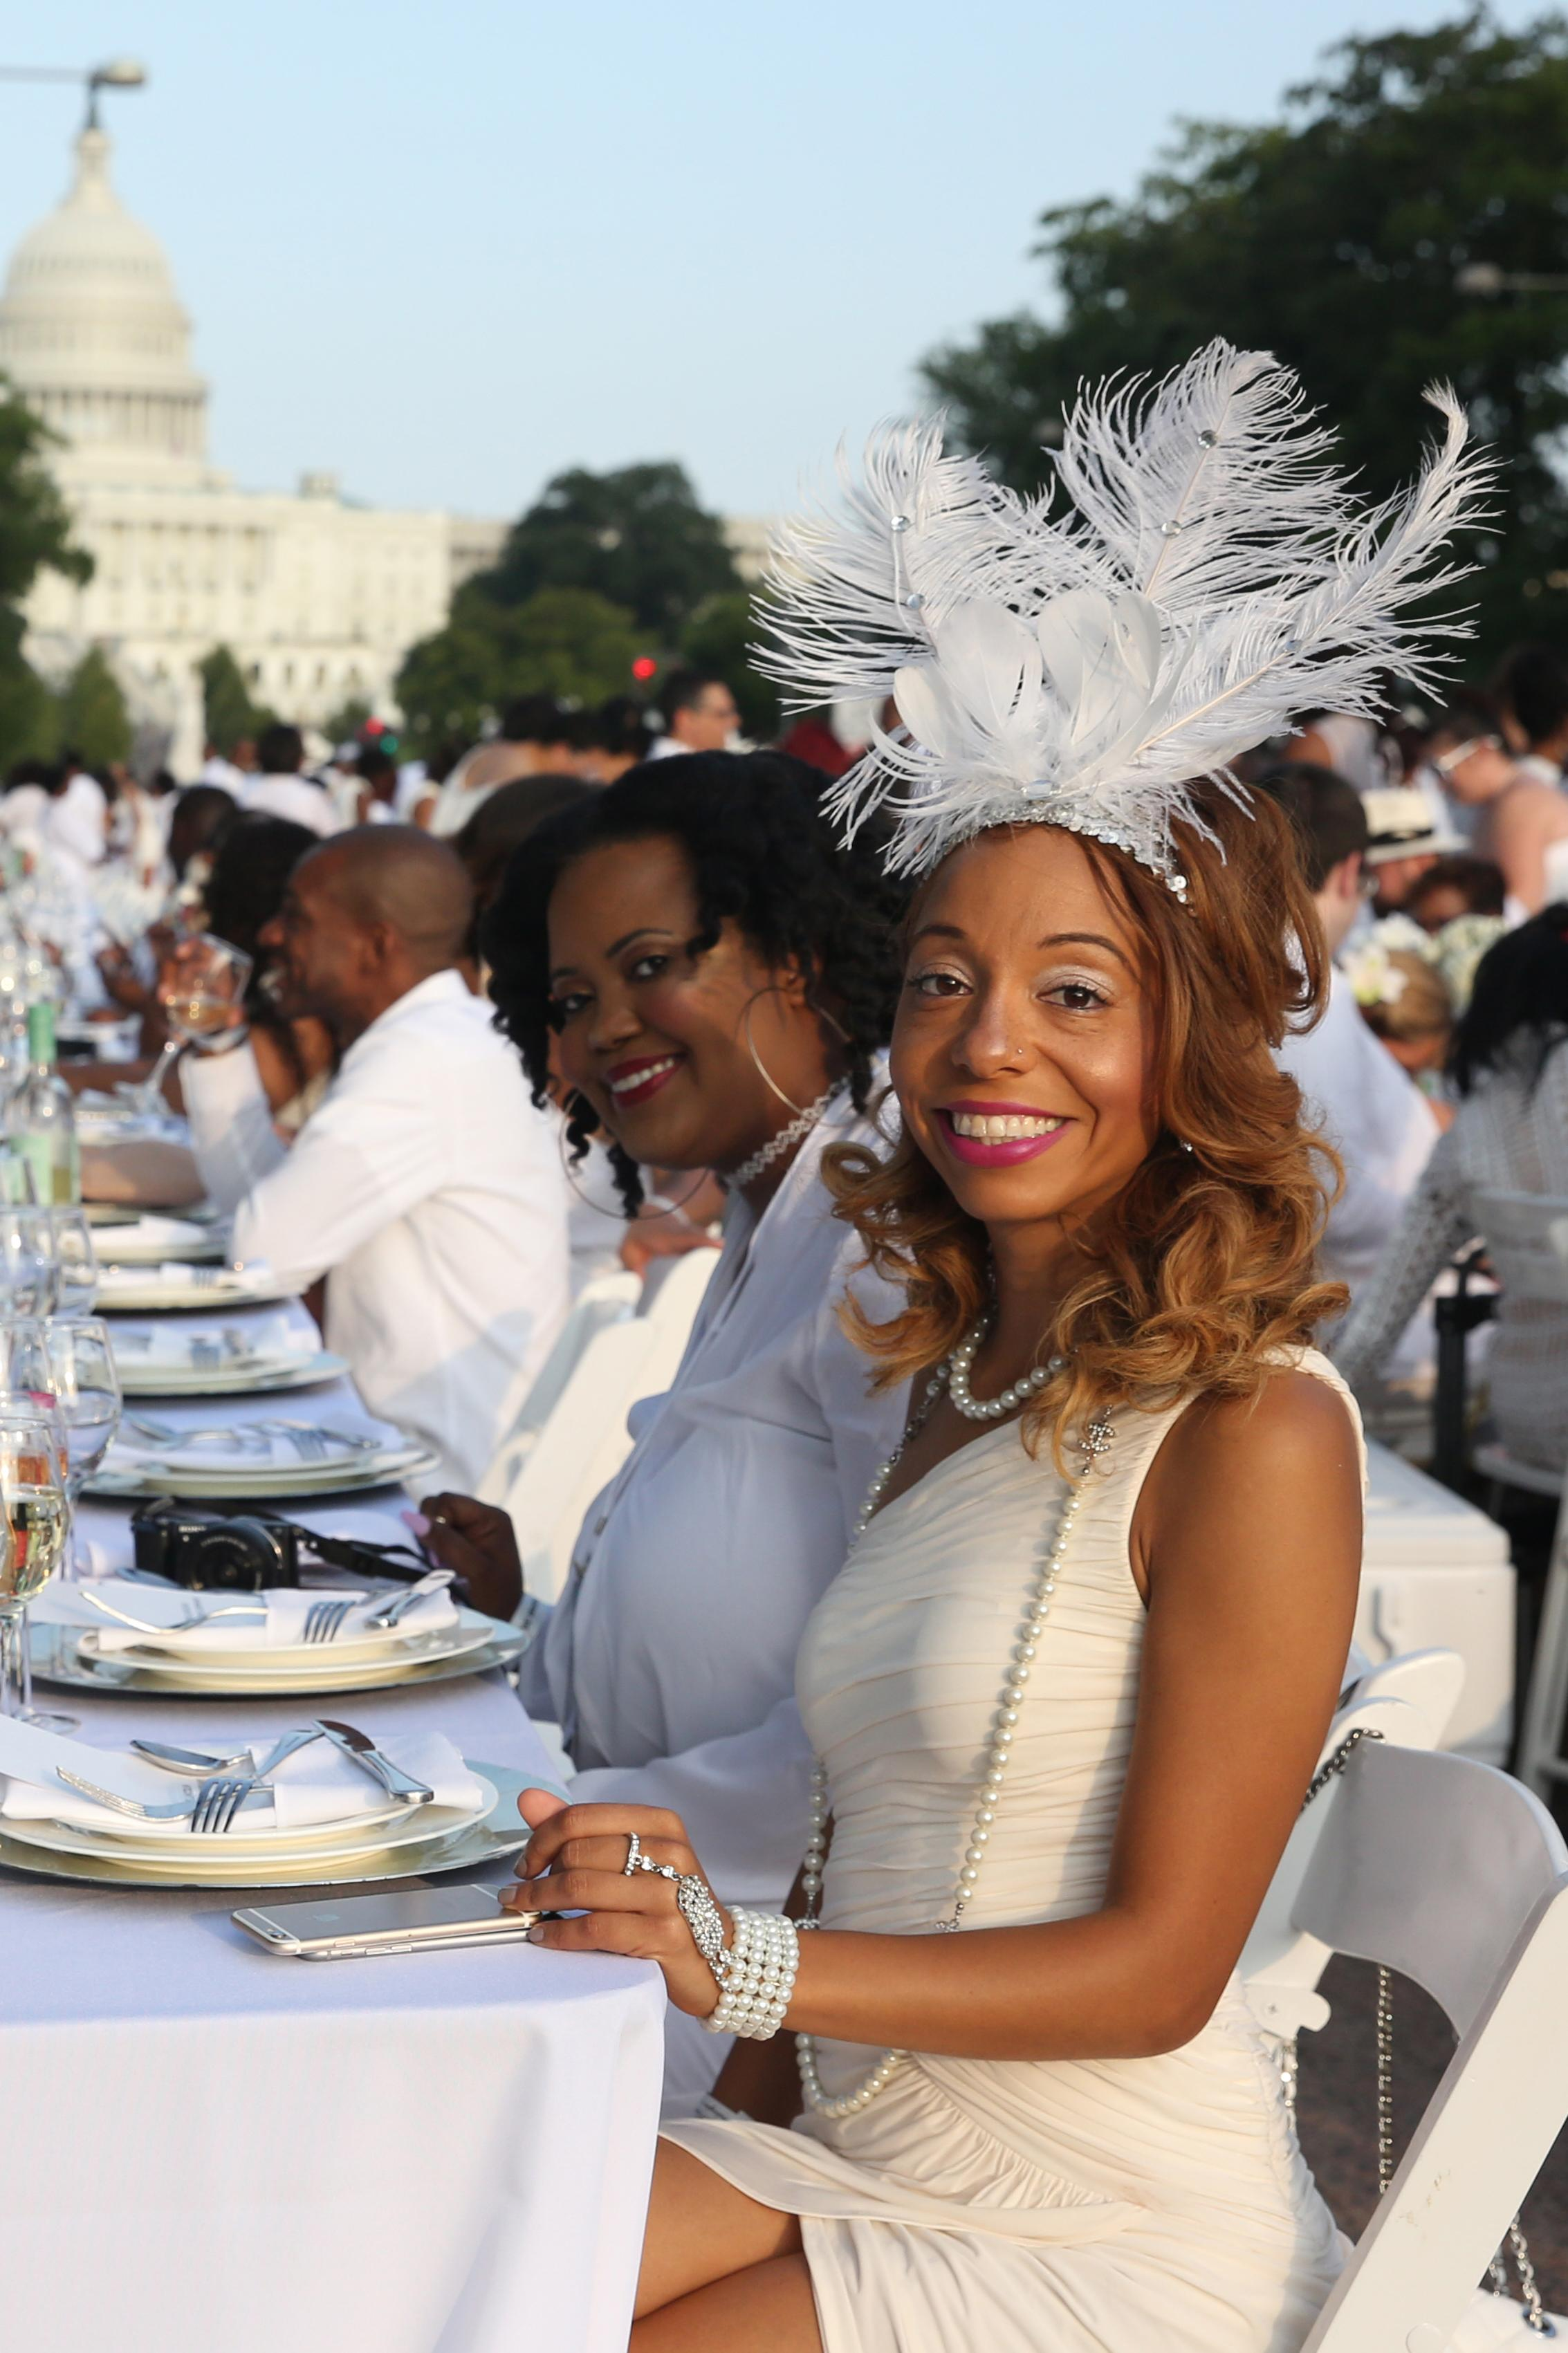 Diner en Blanc has a pretty strict dress code - all white everything. Still, the outfits are anything but boring! Here are some of our favorite looks from Diner en Blanc. (Amanda Andrade-Rhoades/DC Refined)